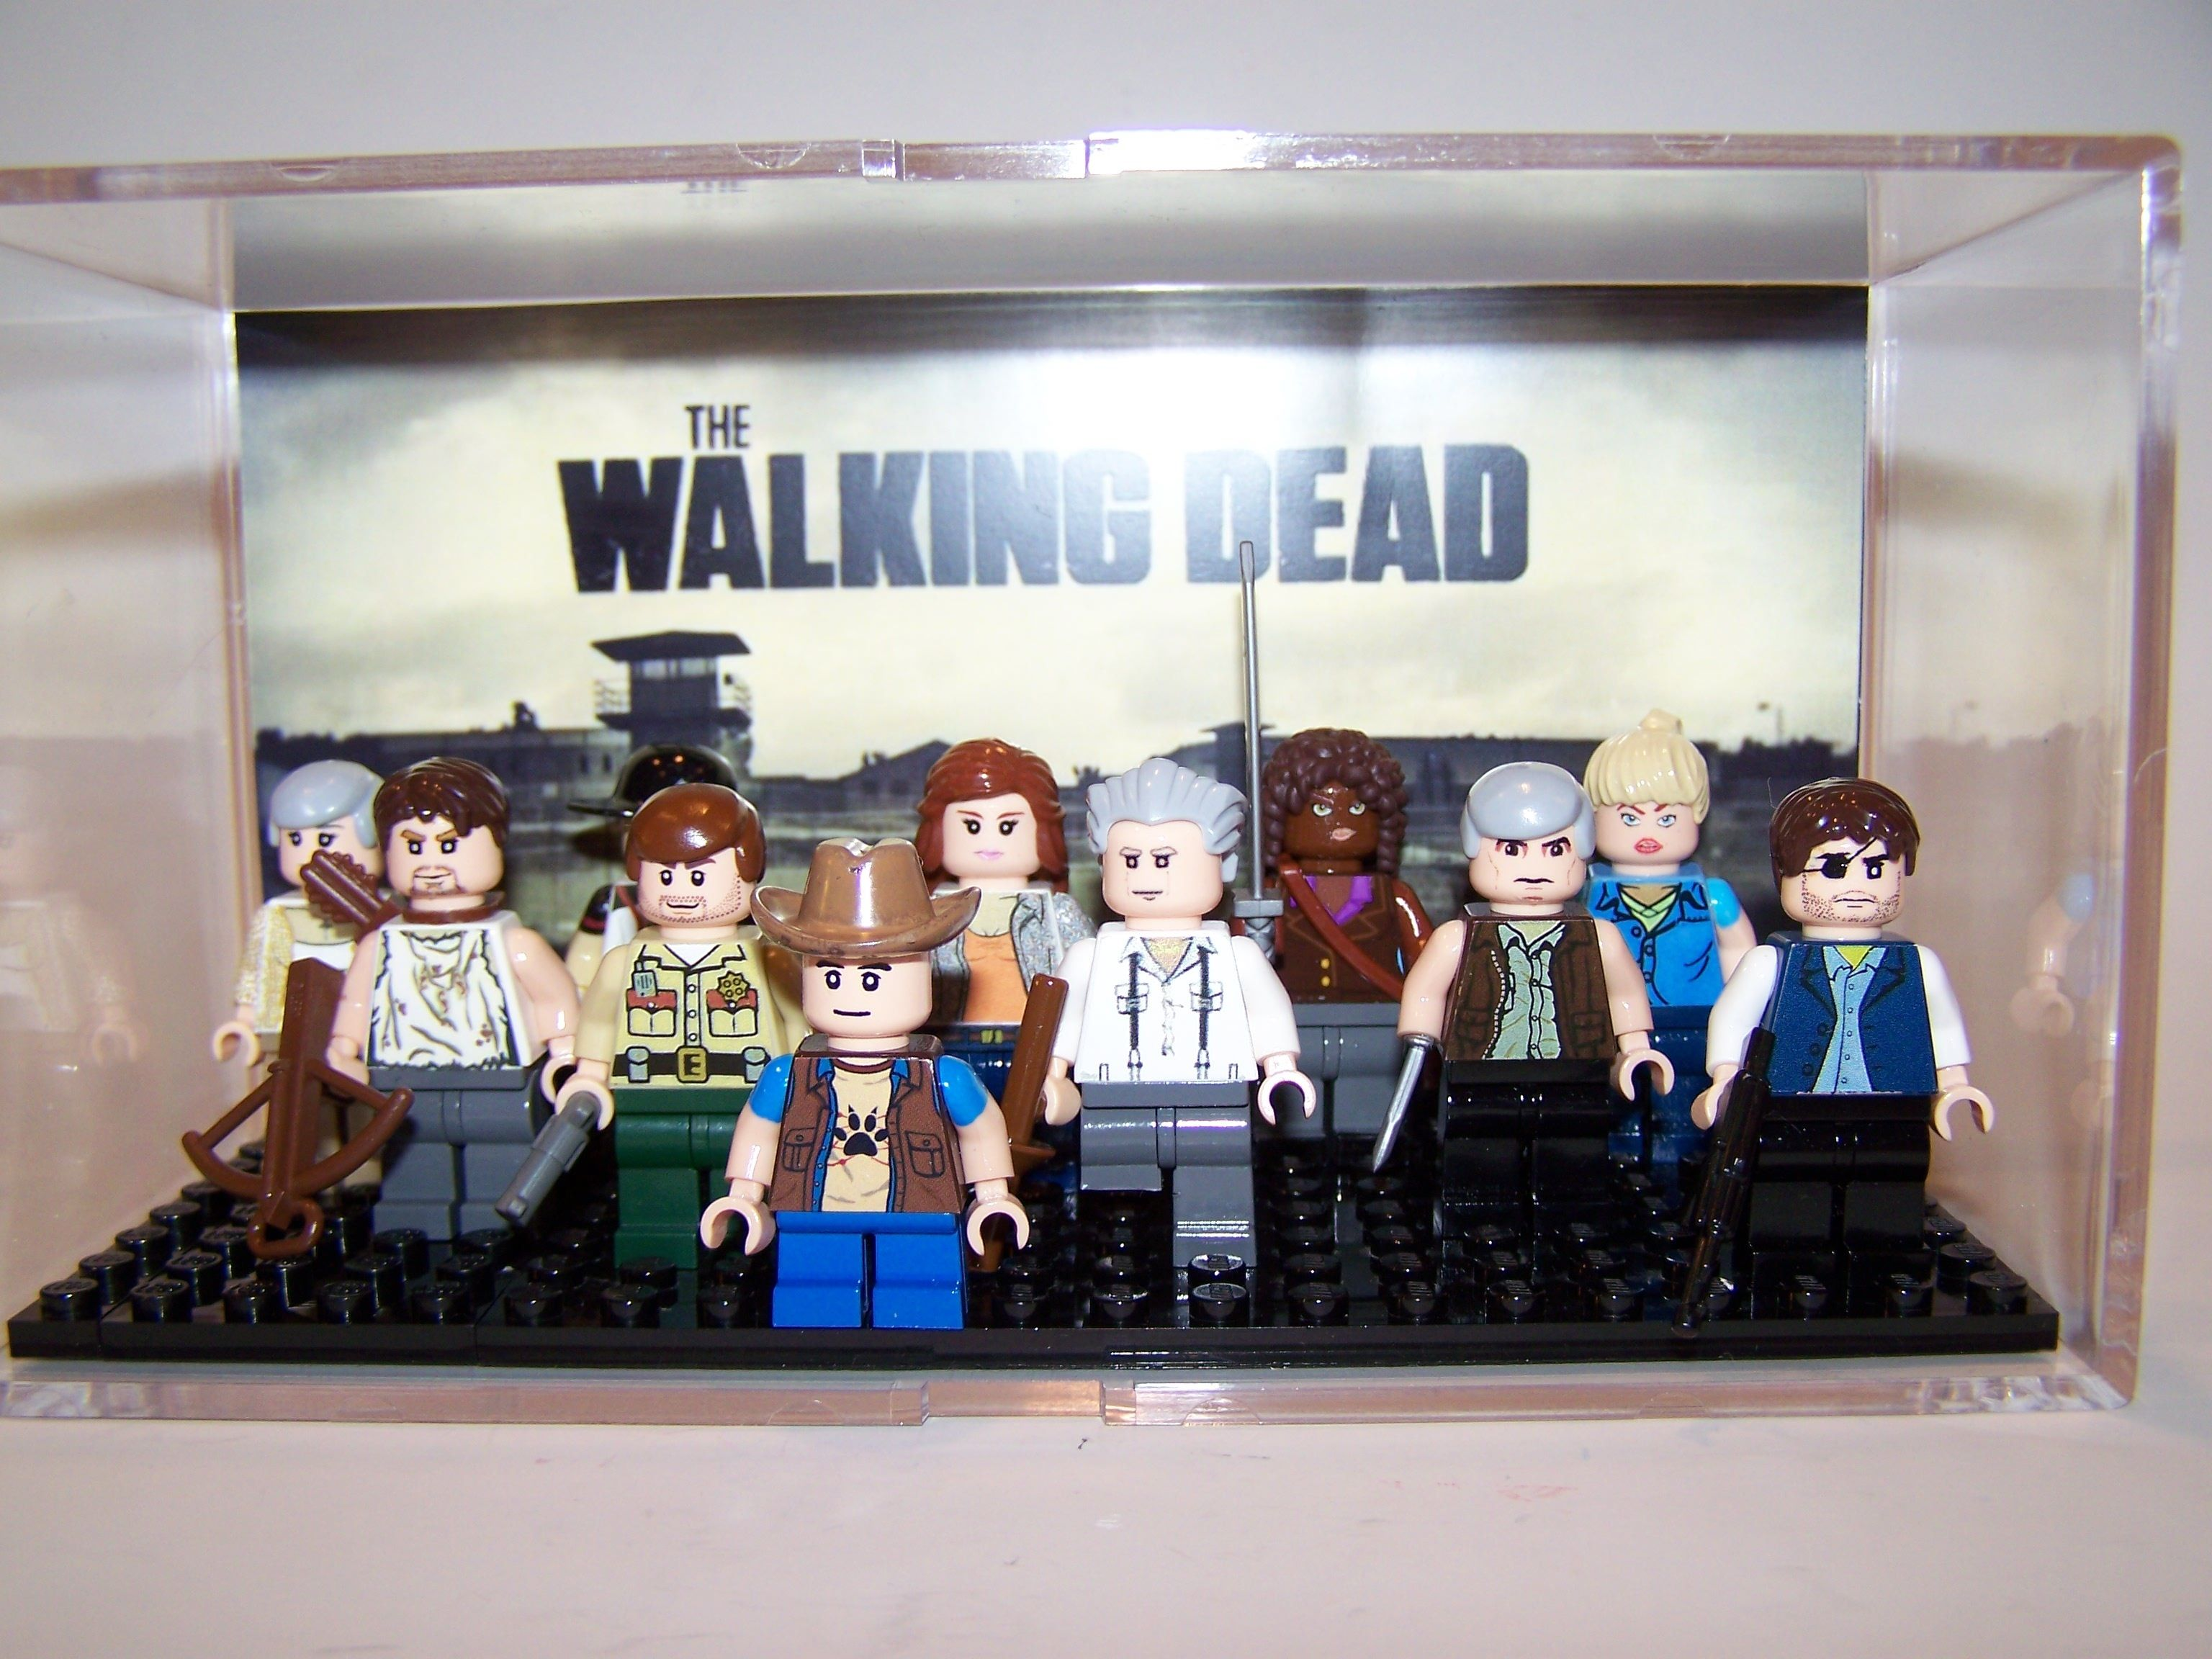 Walking dead lego daryl the walking - Best 25 Walking Dead Lego Ideas On Pinterest Lego Creations Amazing Lego Creations And Shop Lego